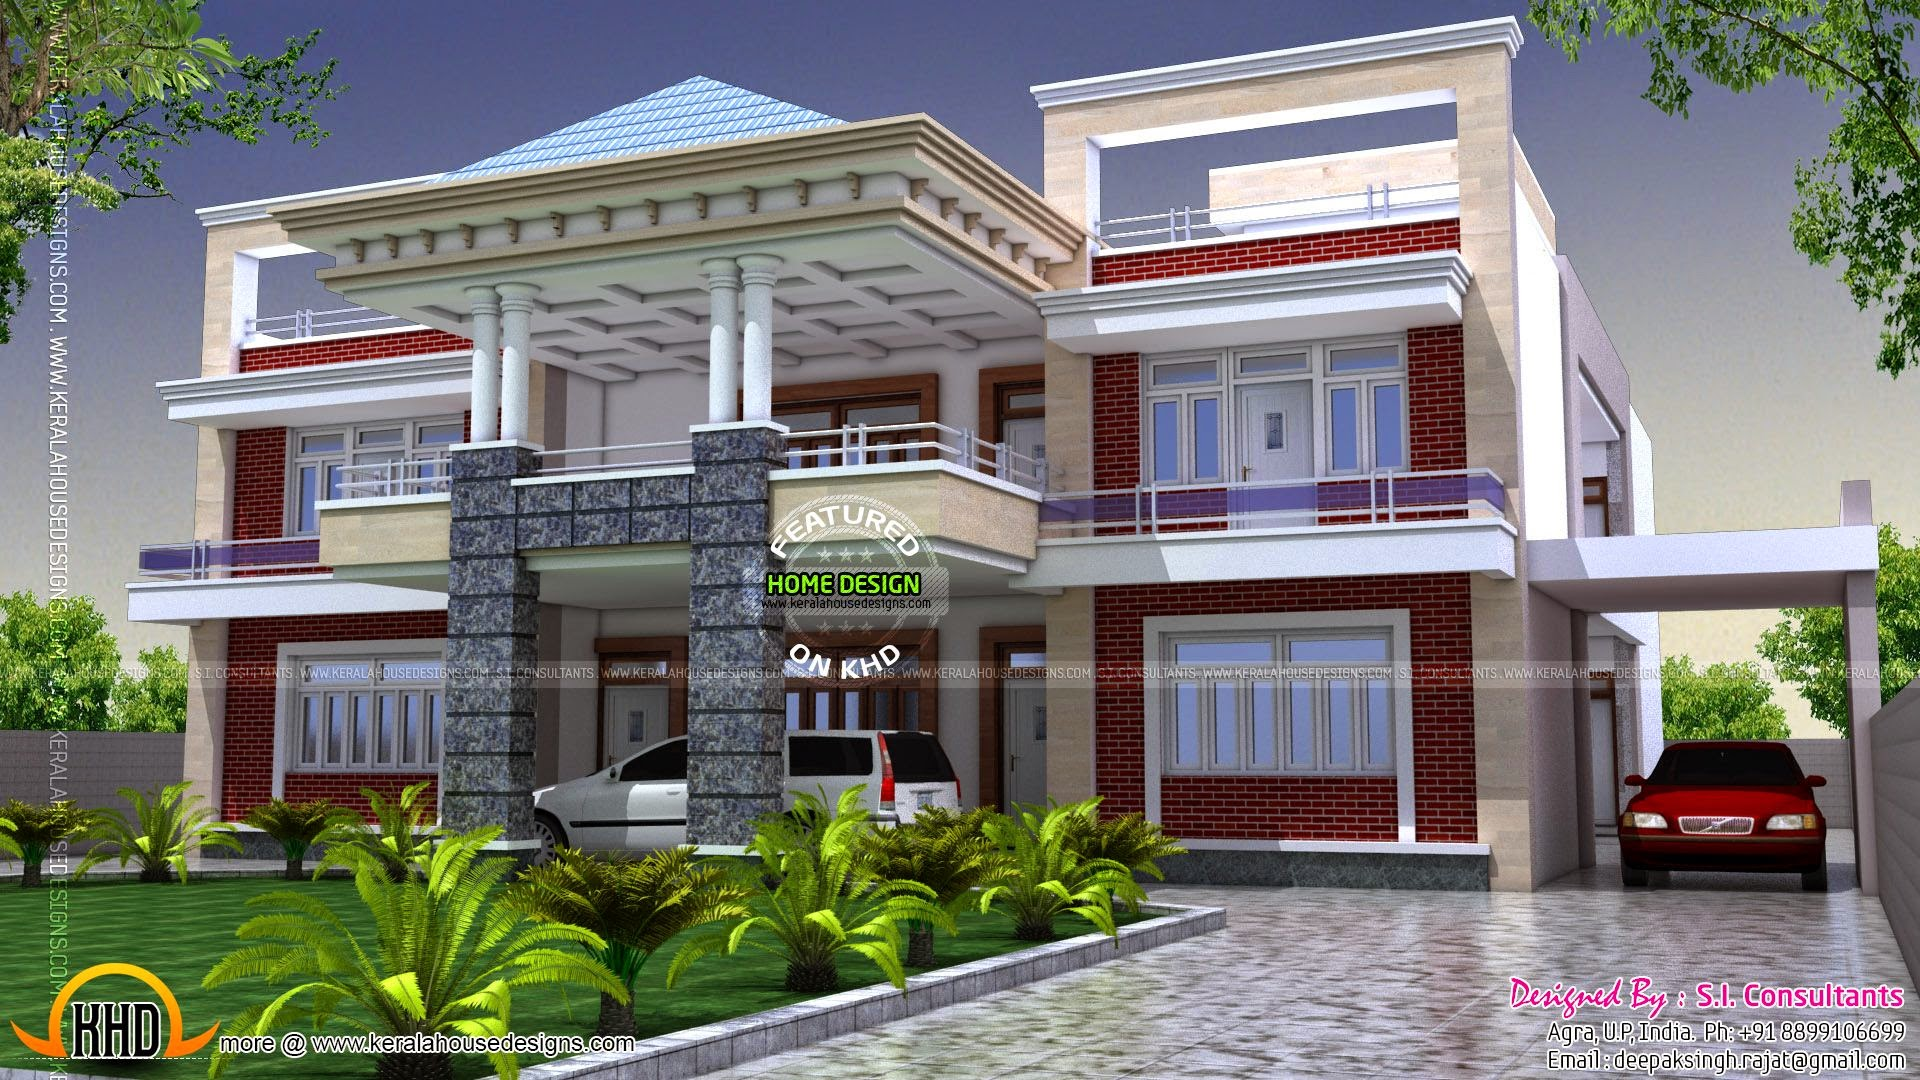 North indian luxury house kerala home design and floor plans Homes design images india